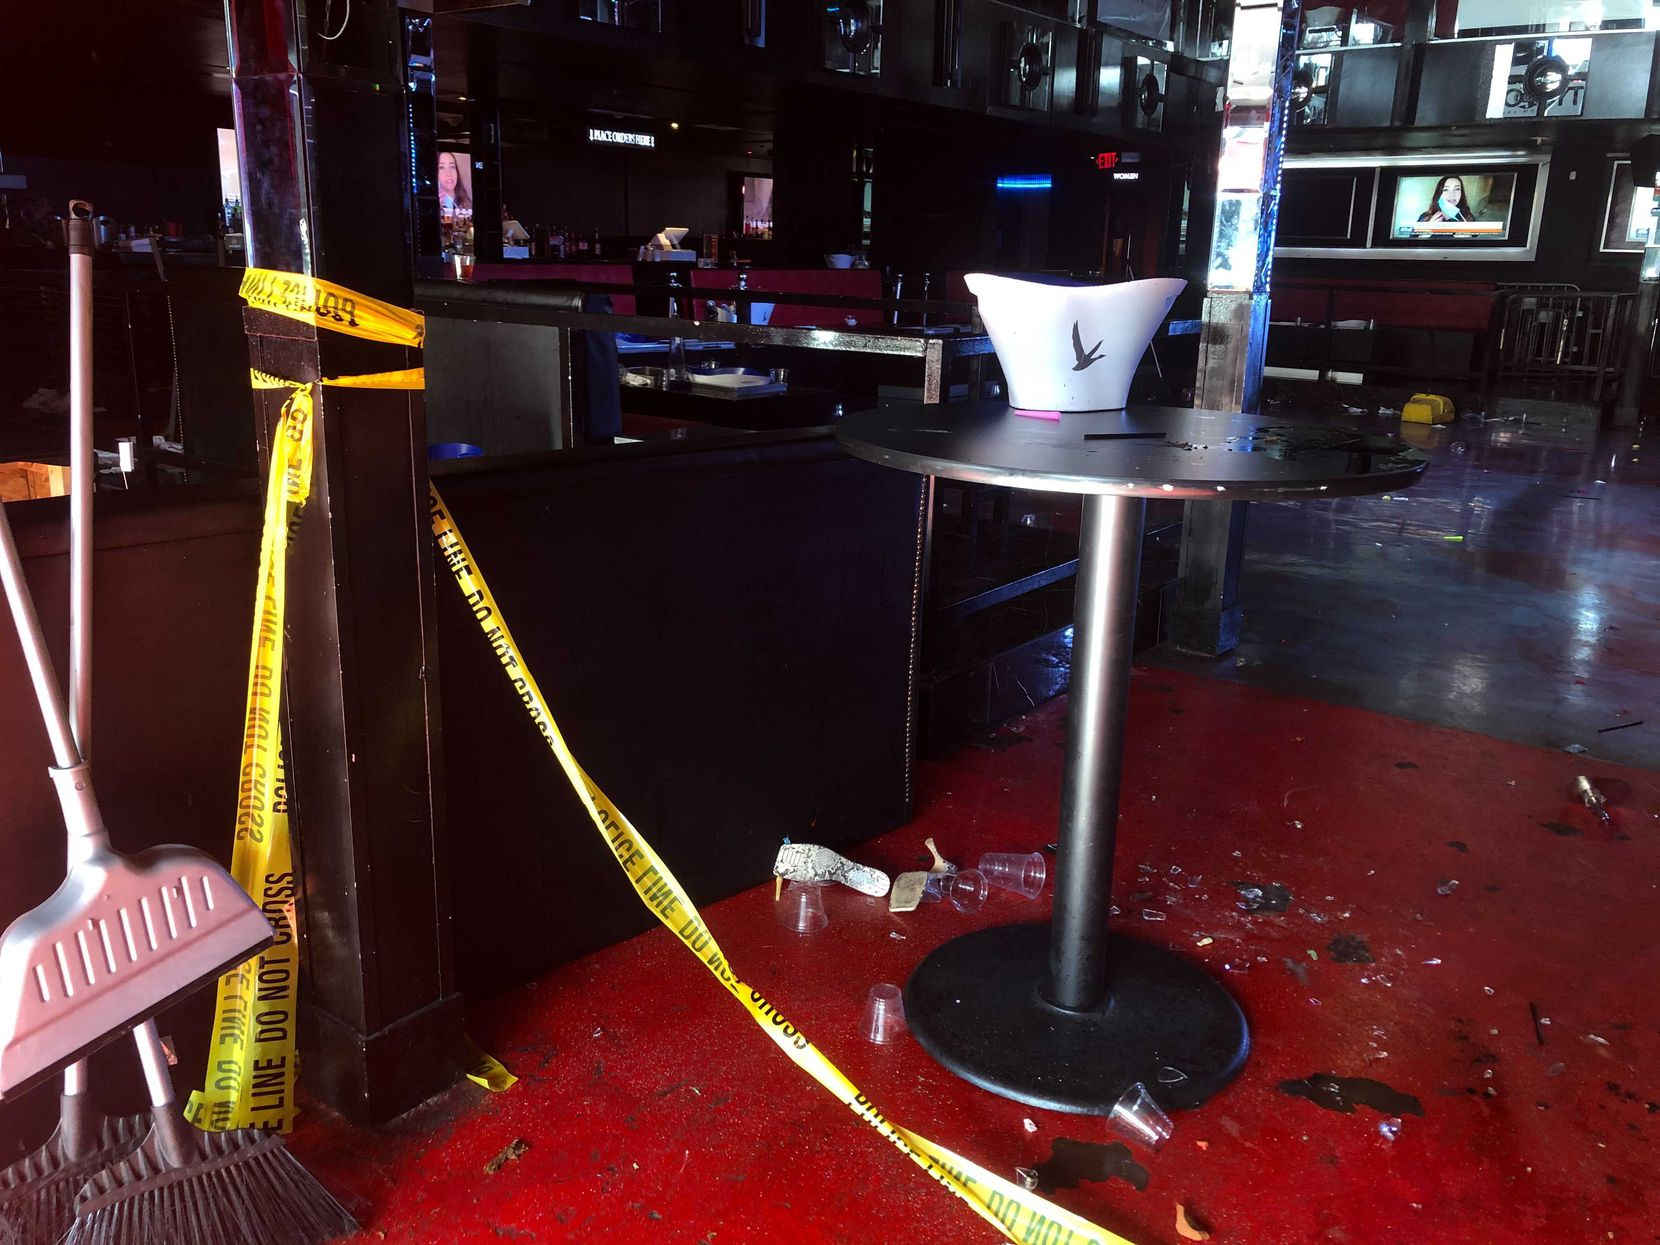 Crime scene tape and debris littered the Pryme Bar in northwest Dallas on Saturday morning. The staff was cleaning up.